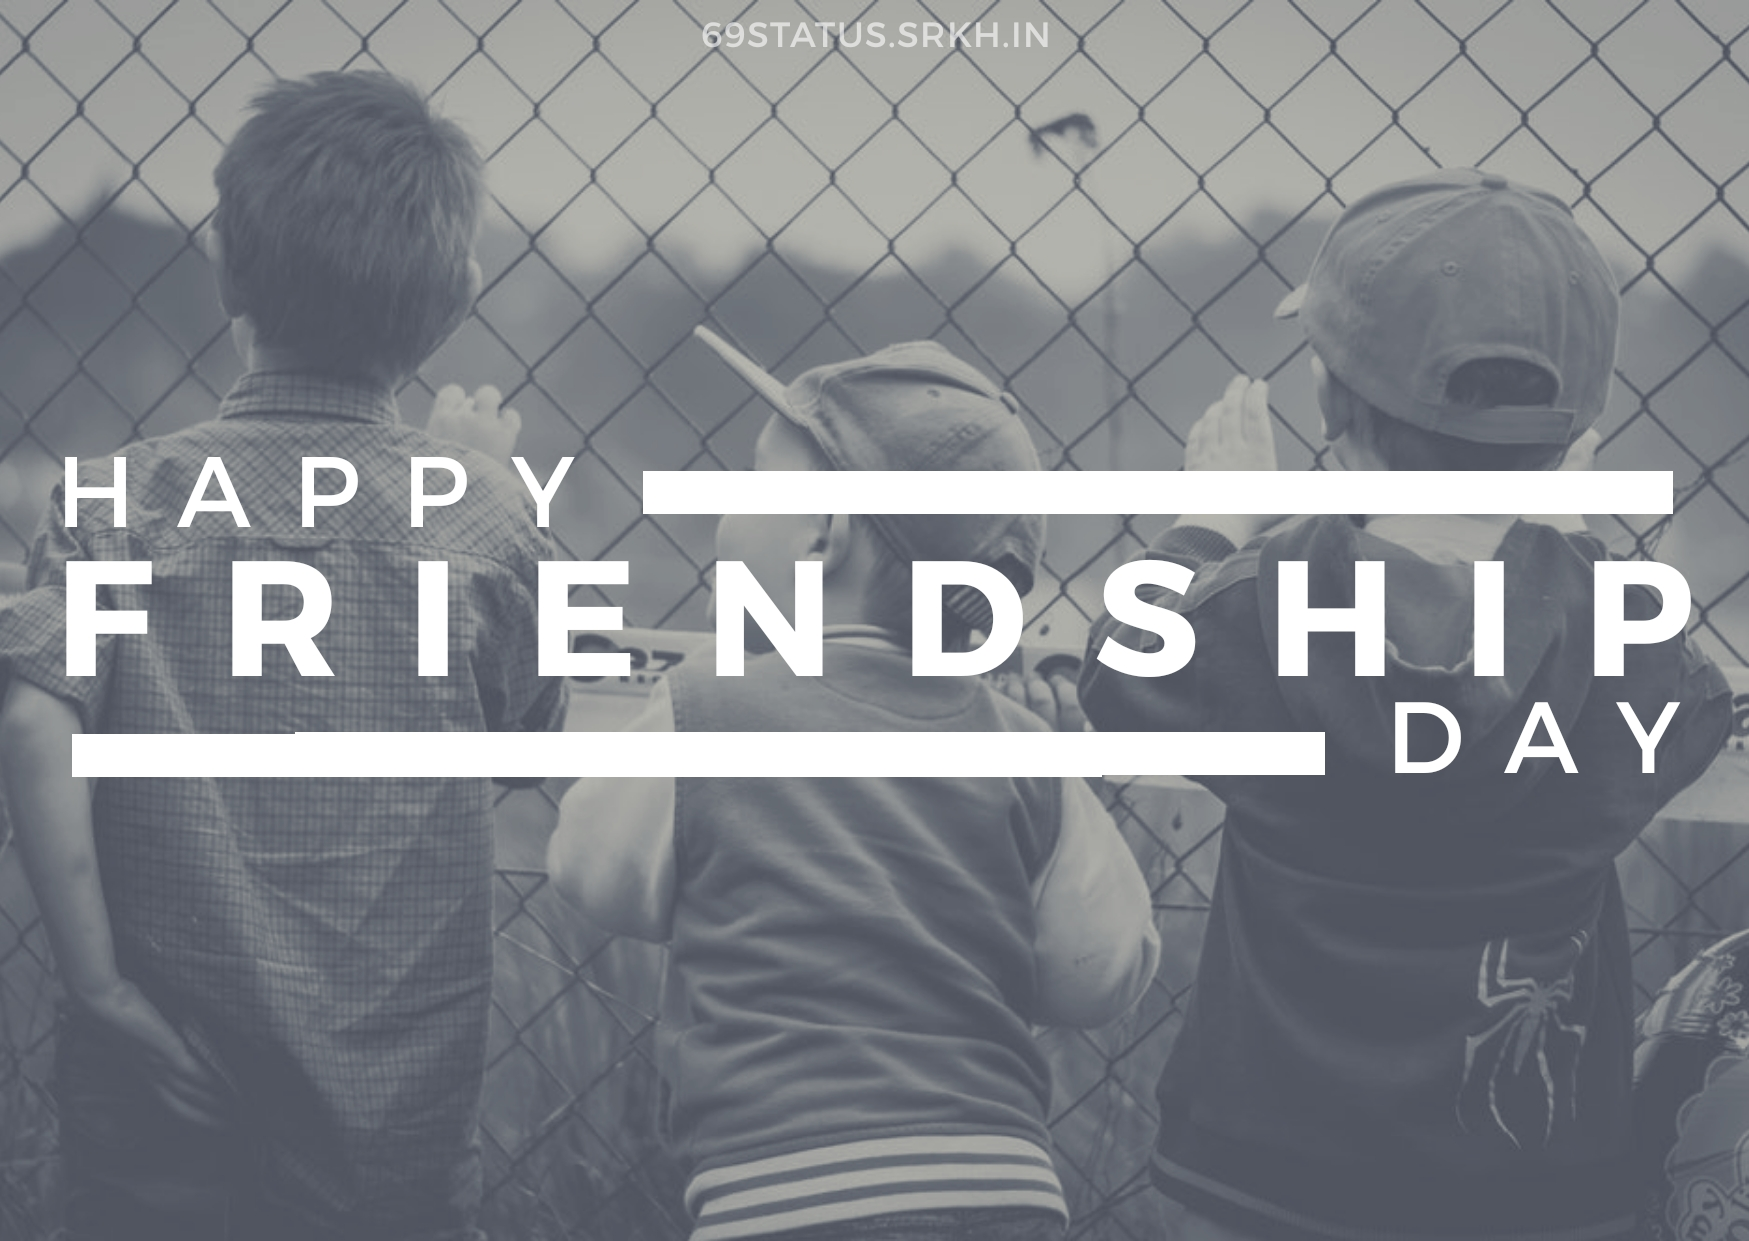 Happy Friendship Day Image HD full HD free download.